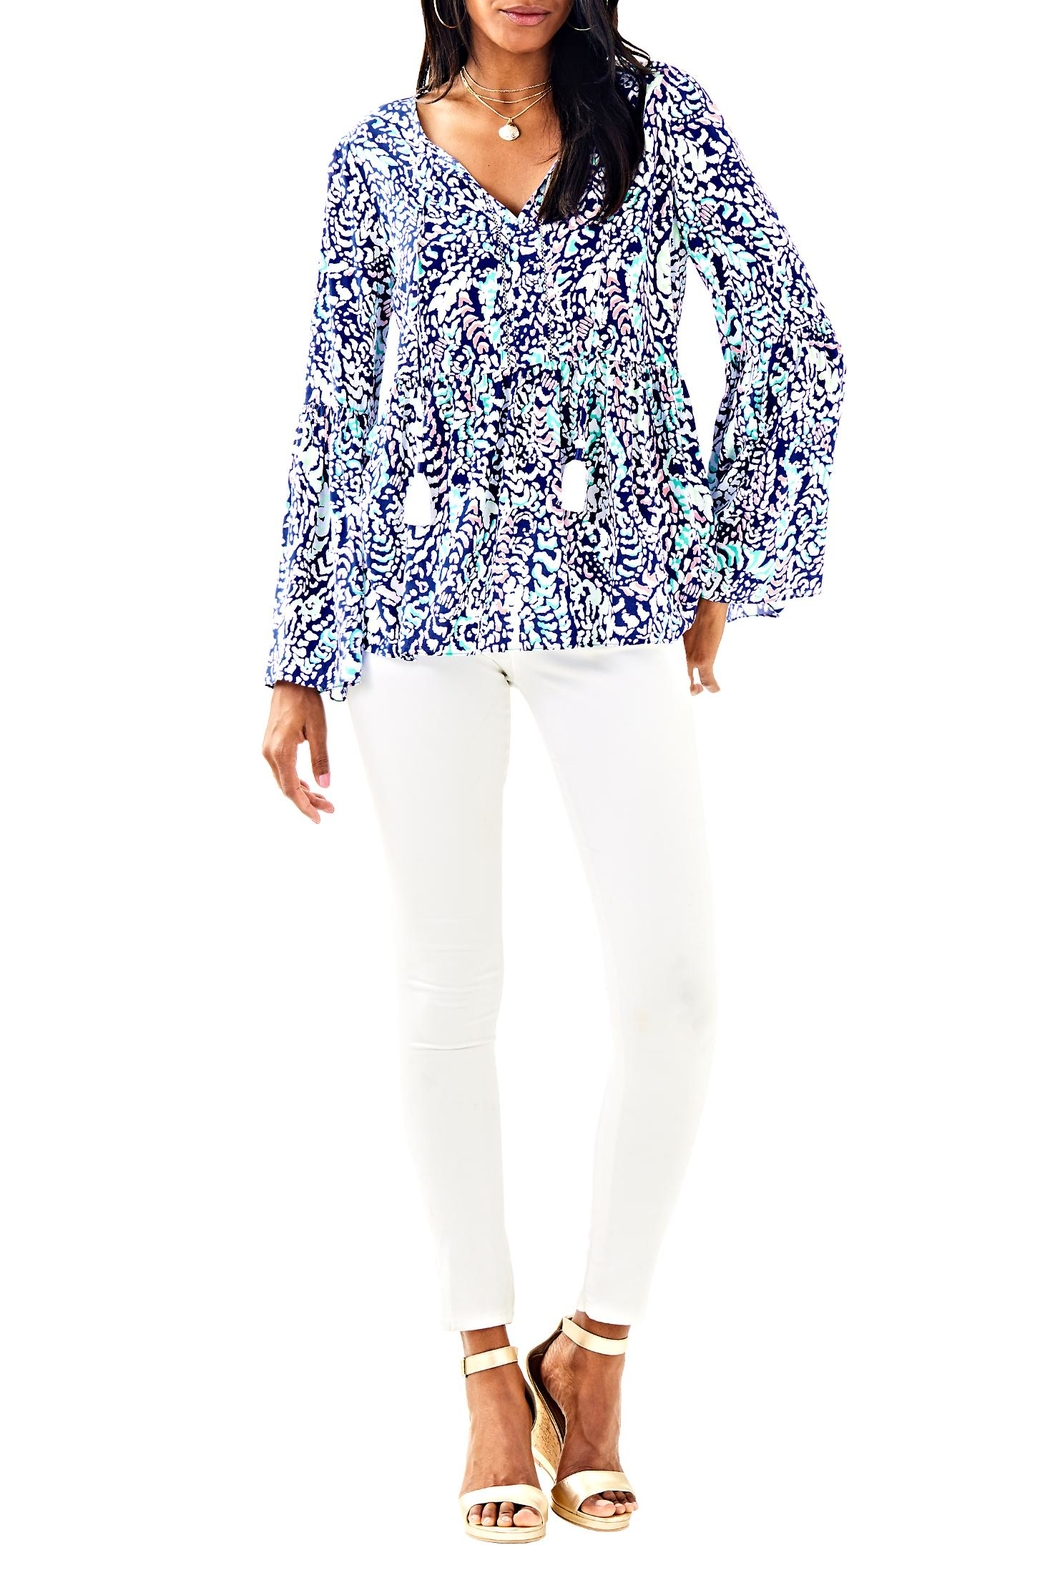 Lilly Pulitzer Kahli Top - Side Cropped Image